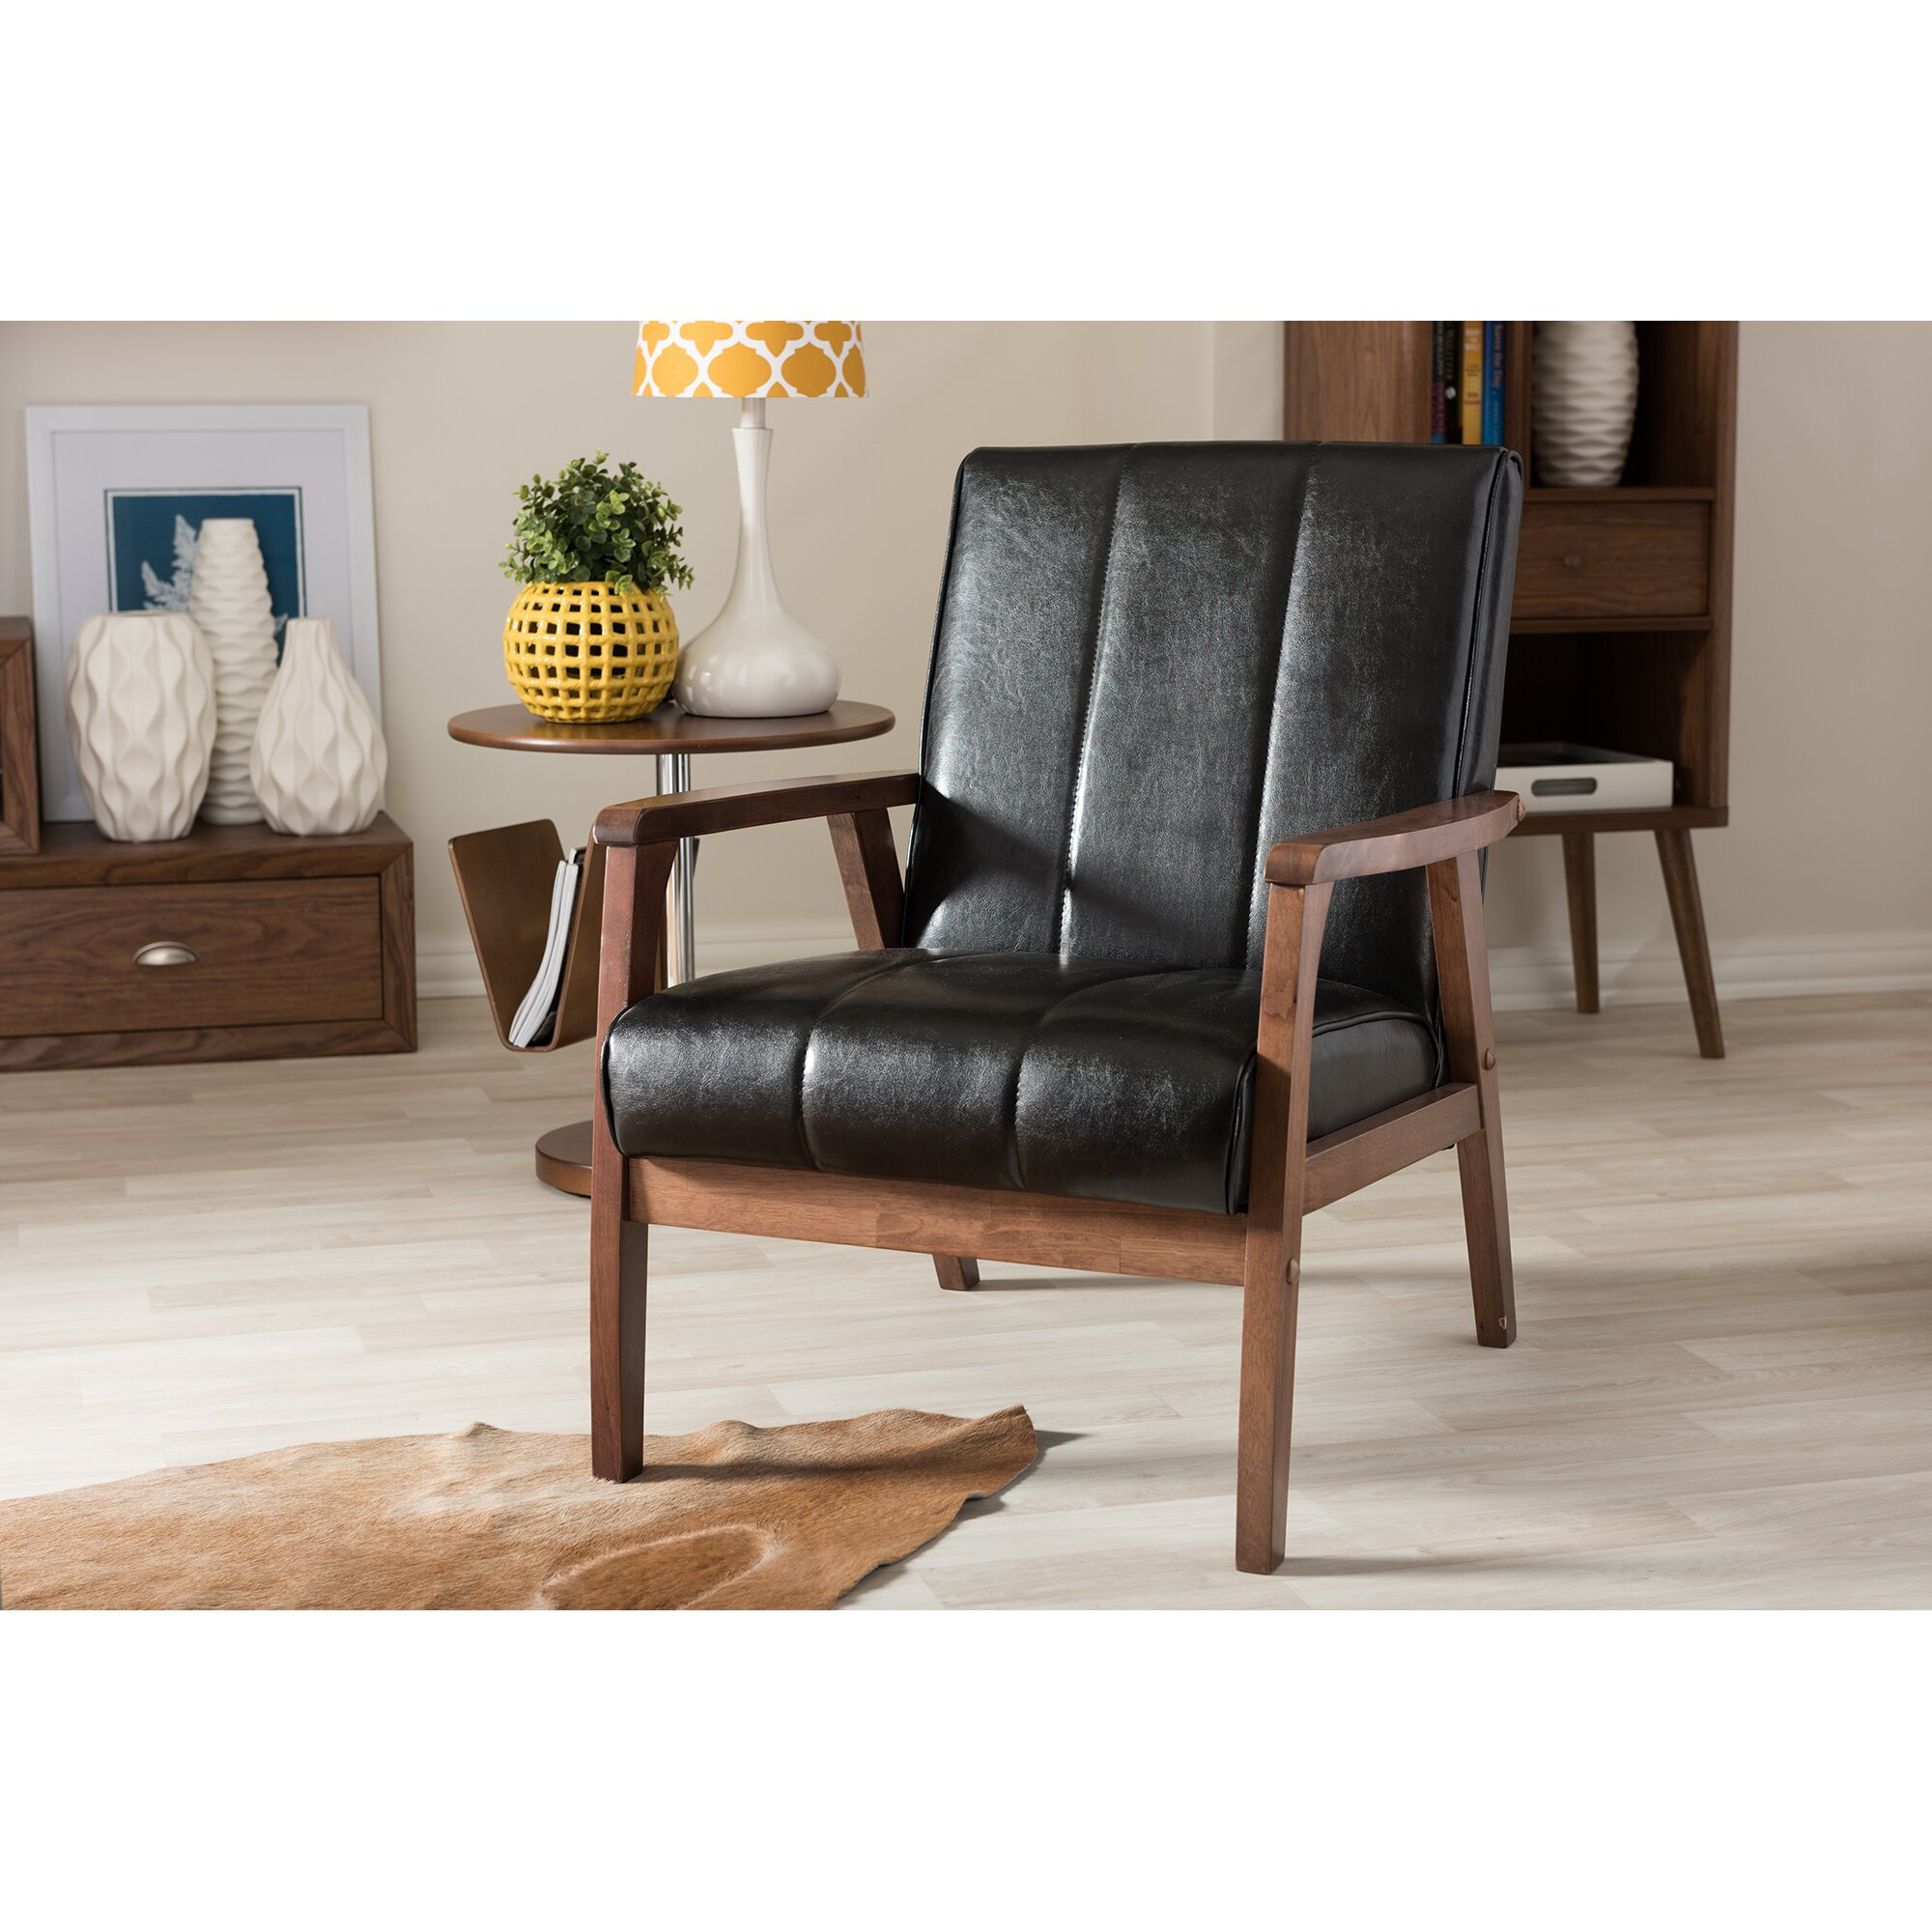 Langley street ingmar lounge chair reviews wayfair for Outdoor furniture langley